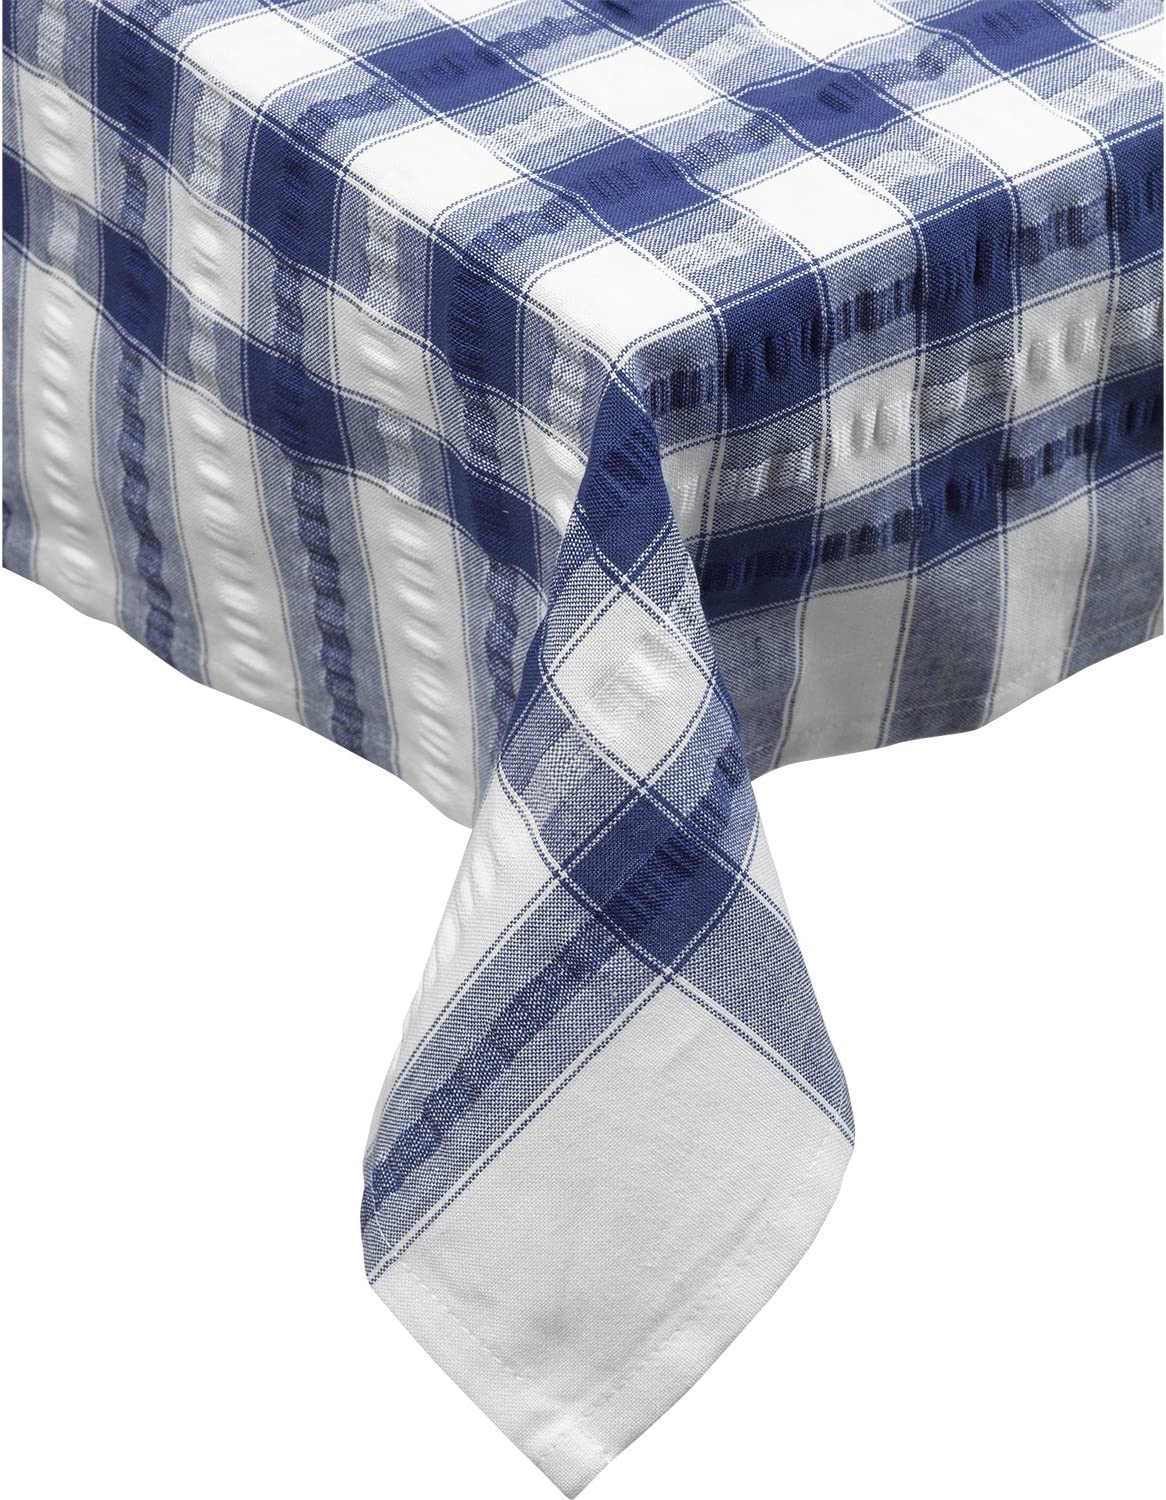 A Small Grey Seersucker Tablecloths  36� x 36� Square  100/% Cotton Best Quality